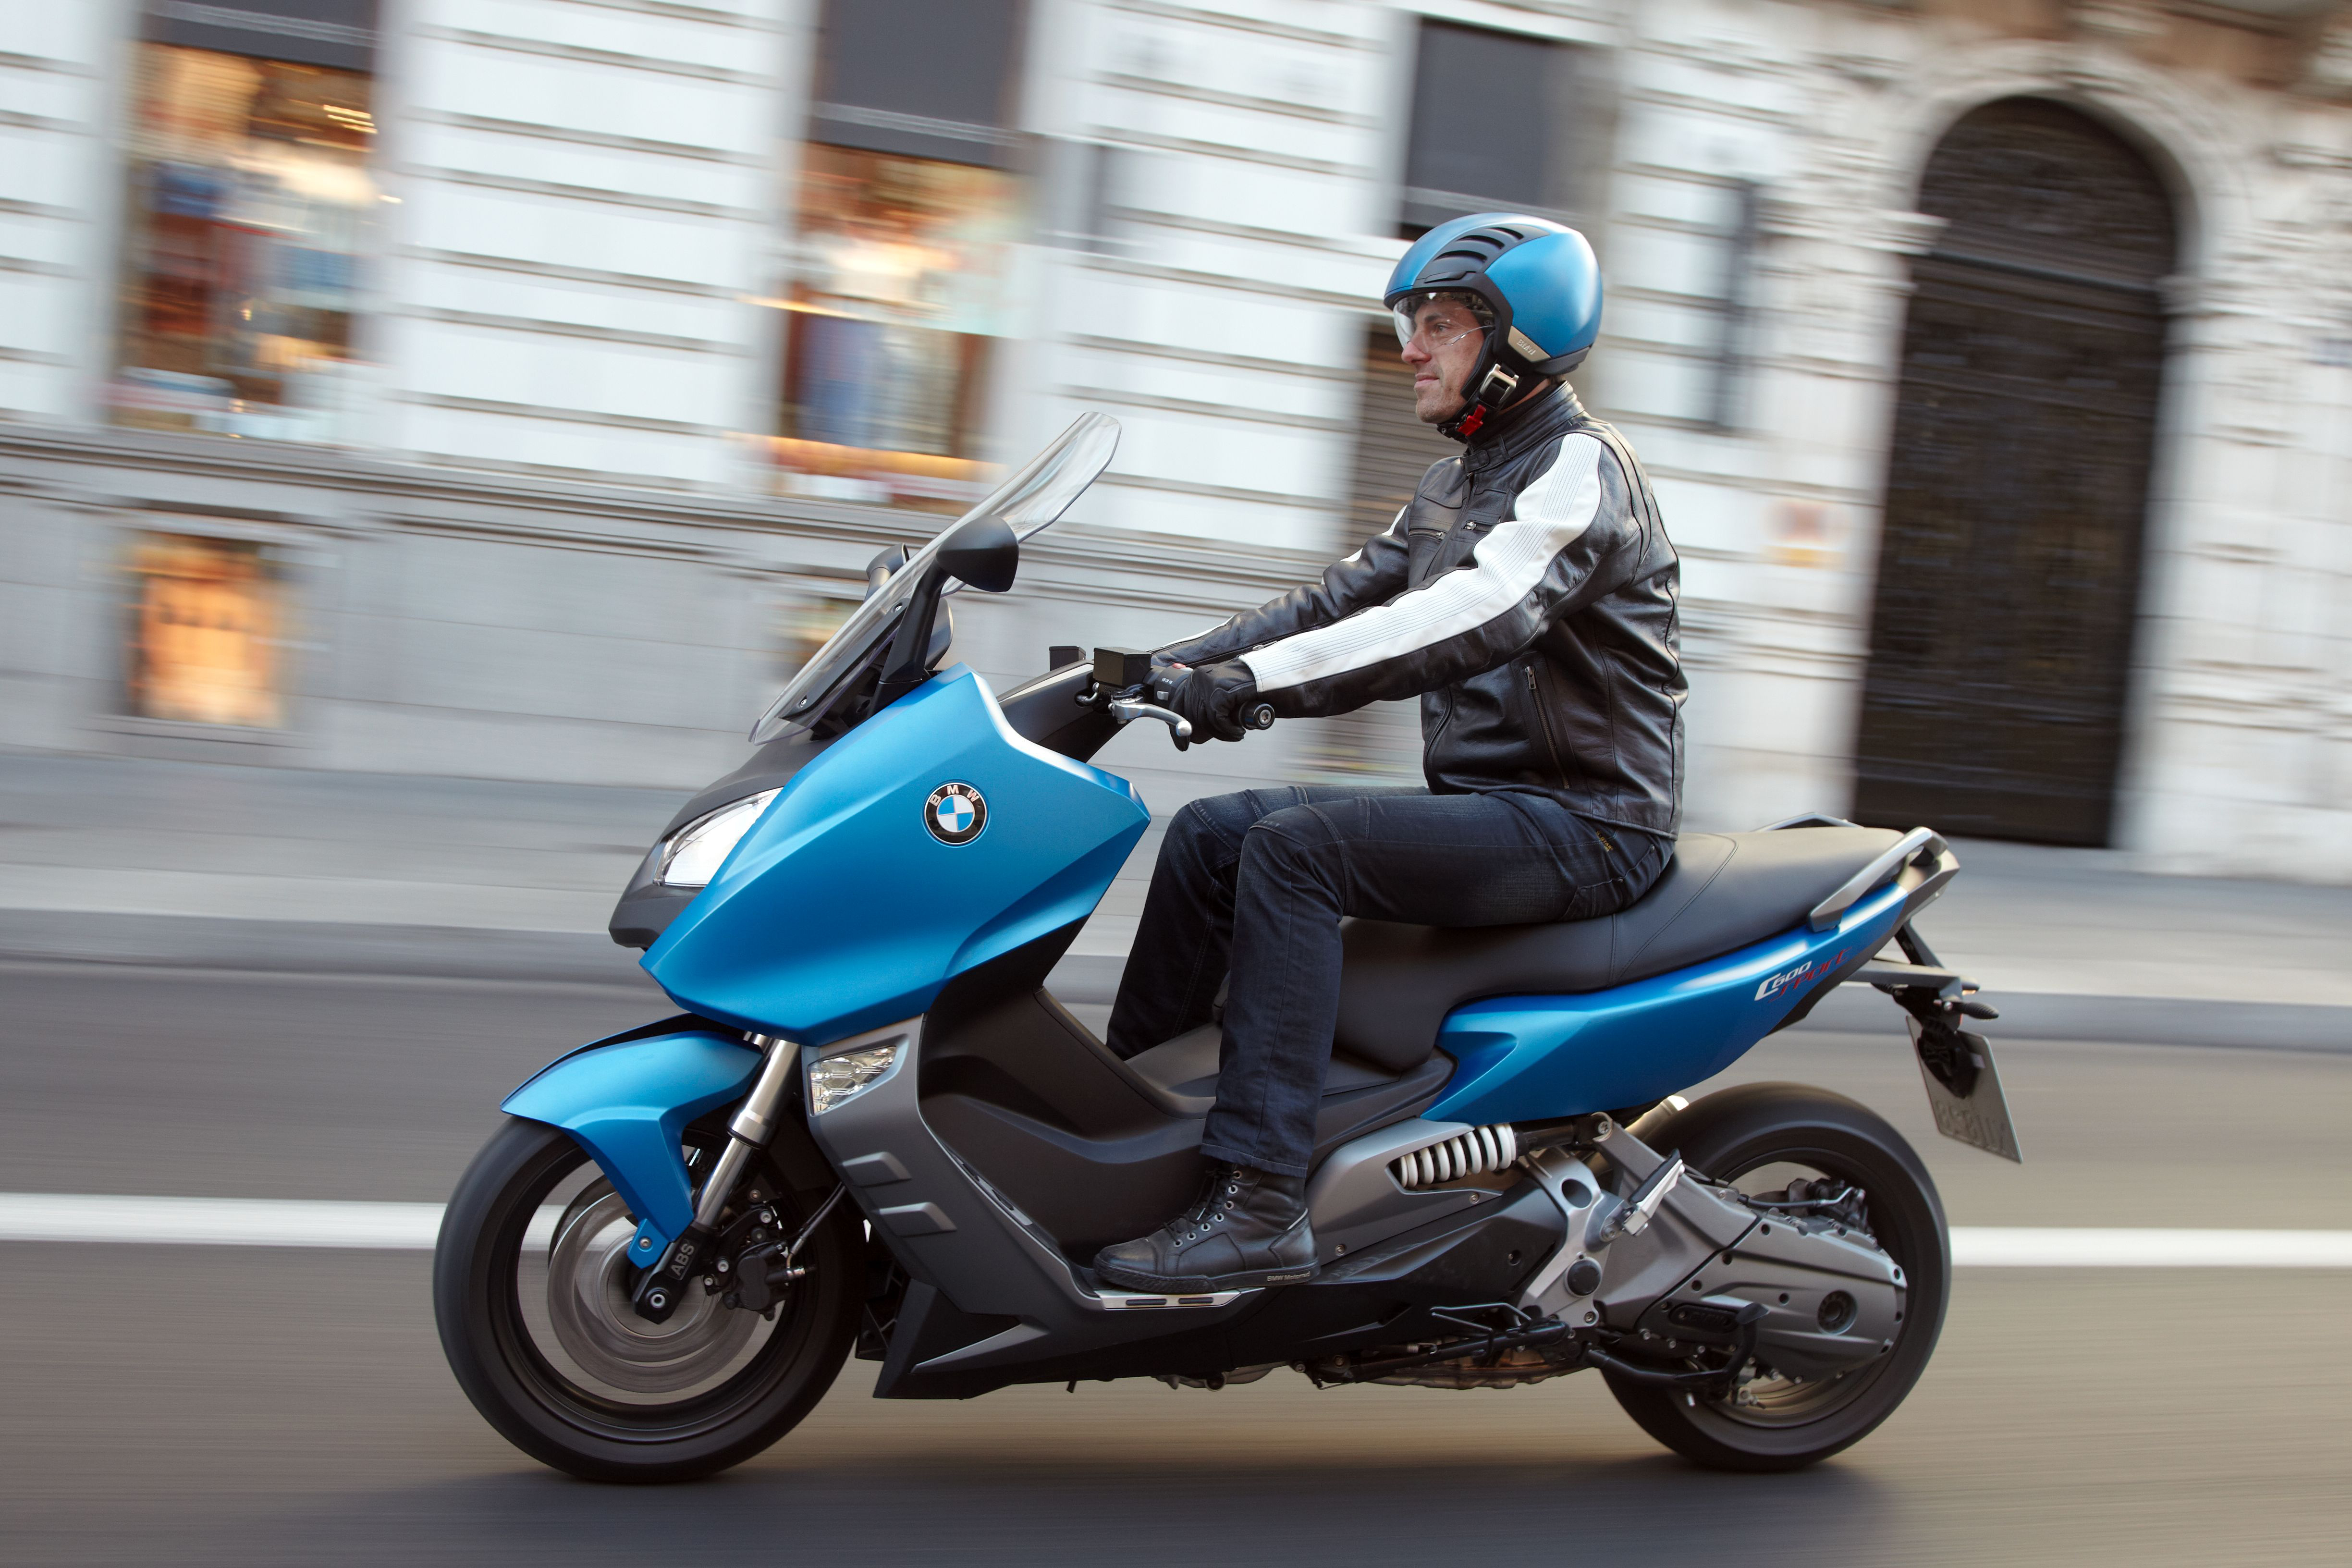 bmw c600 sport c650 gt maxi scooters launched image 138630. Black Bedroom Furniture Sets. Home Design Ideas